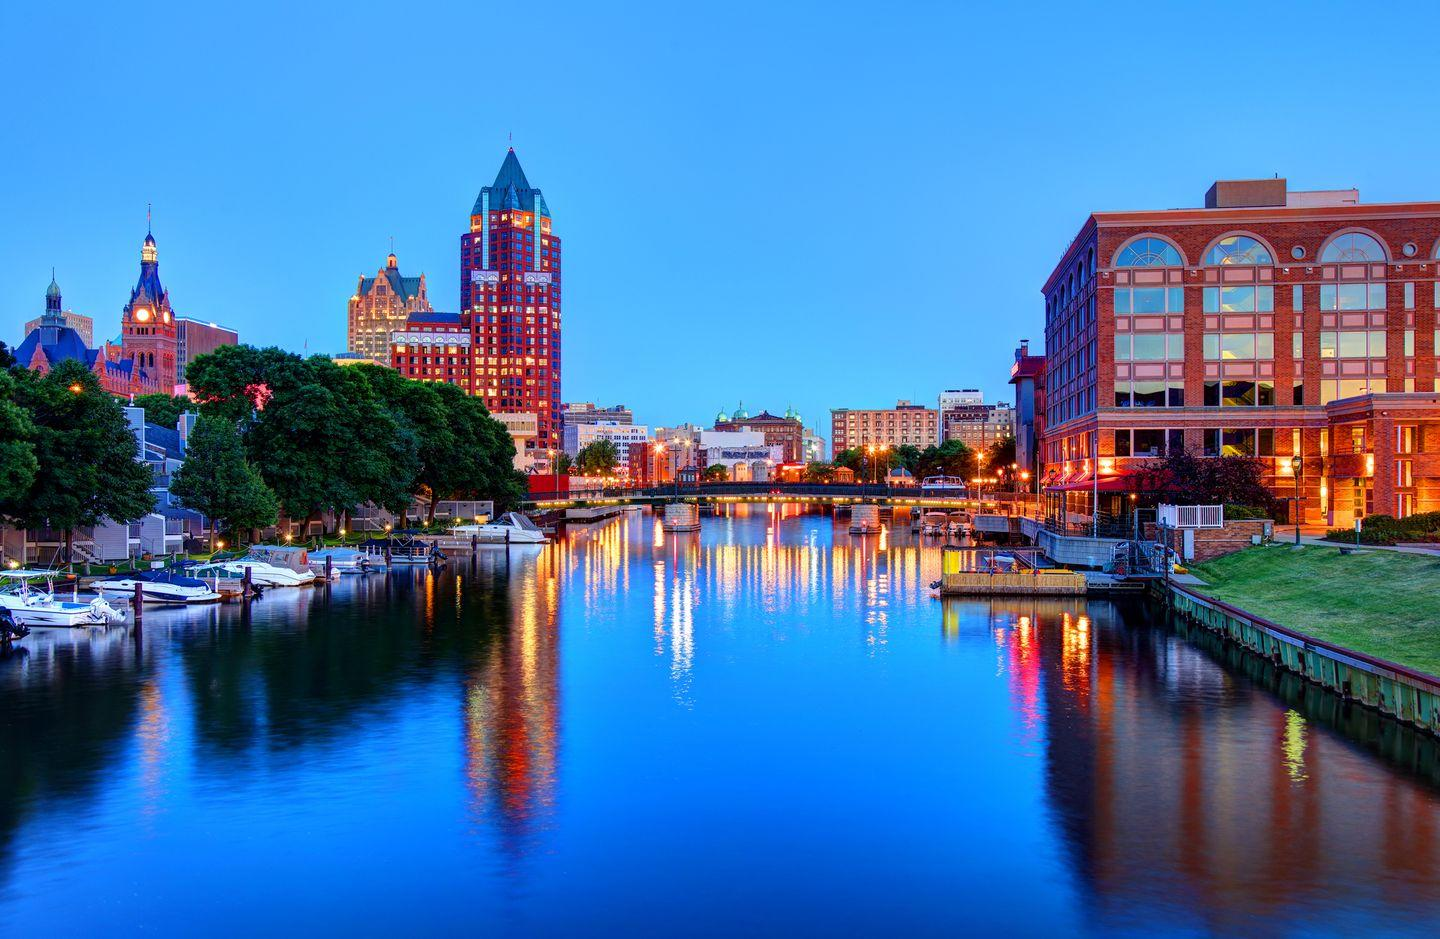 """<p><strong>Why for 2020:</strong> Next year, the city will be the host for the Democrat National Convention (DNC) where the party will select its nominees for President and Vice President to take on Trump in the 2020 election which will bring renewed focus to the city. This is one of the reasons, according to Airbnb, to explain why there has been a whopping 729% year-on-year increase in people searching for accommodation in the city.</p><p><strong>Top tips: </strong>The booking platform says the city's impressive bar and restaurant scene often 'slips under the radar' but should not be overlooked. The city is also home to cultural attractions like the city's art museum and sits on the shores of Lake Michigan so offers plenty of opportunities for water sports. For any avid cyclists, the city offers 105 miles of scenic bike lanes with plenty of rental stores to pick up a bicycle tool.</p><p><a class=""""link rapid-noclick-resp"""" href=""""https://go.redirectingat.com?id=127X1599956&url=https%3A%2F%2Fwww.airbnb.co.uk%2Fs%2FMilwaukee--WI&sref=http%3A%2F%2Fwww.elle.com%2Fuk%2Flife-and-culture%2Fculture%2Fg32358%2Fholiday-destinations%2F"""" rel=""""nofollow noopener"""" target=""""_blank"""" data-ylk=""""slk:Find Airbnbs in Milwaukee"""">Find Airbnbs in Milwaukee</a></p>"""